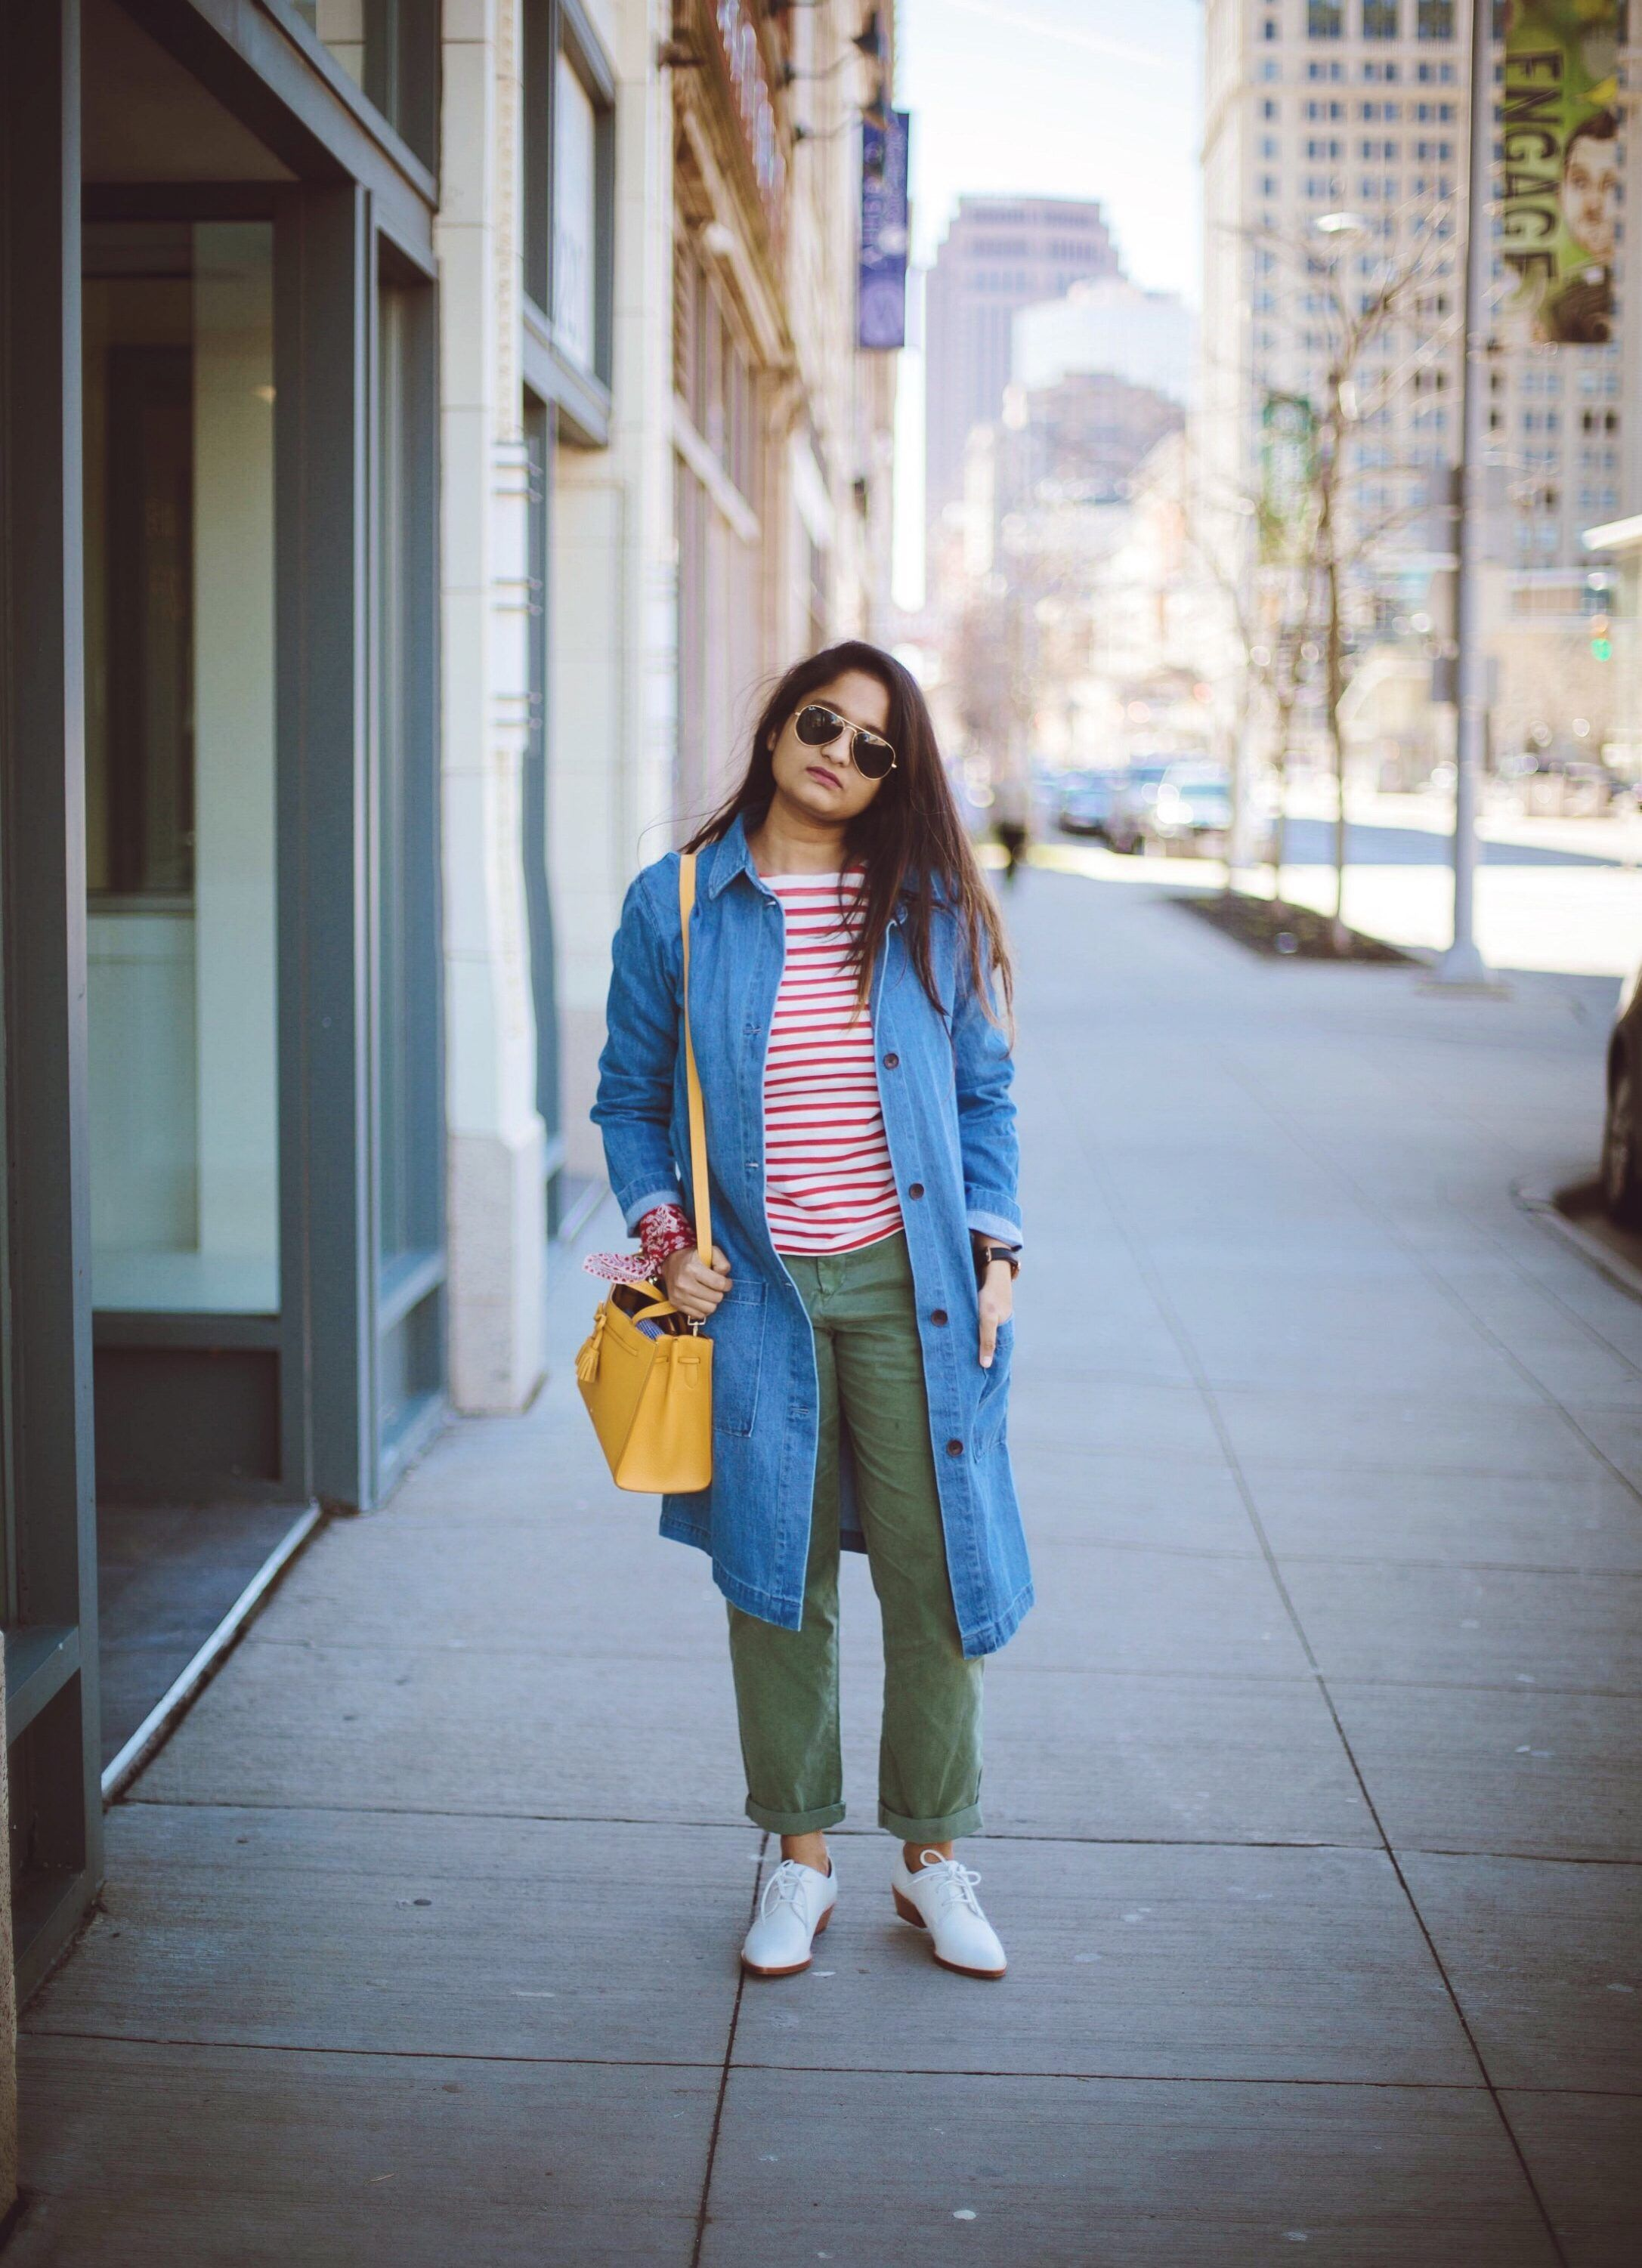 0c8c124ab0 Top 13 Mustard Yellow Cardigan Outfit Ideas for Women - FMag.com